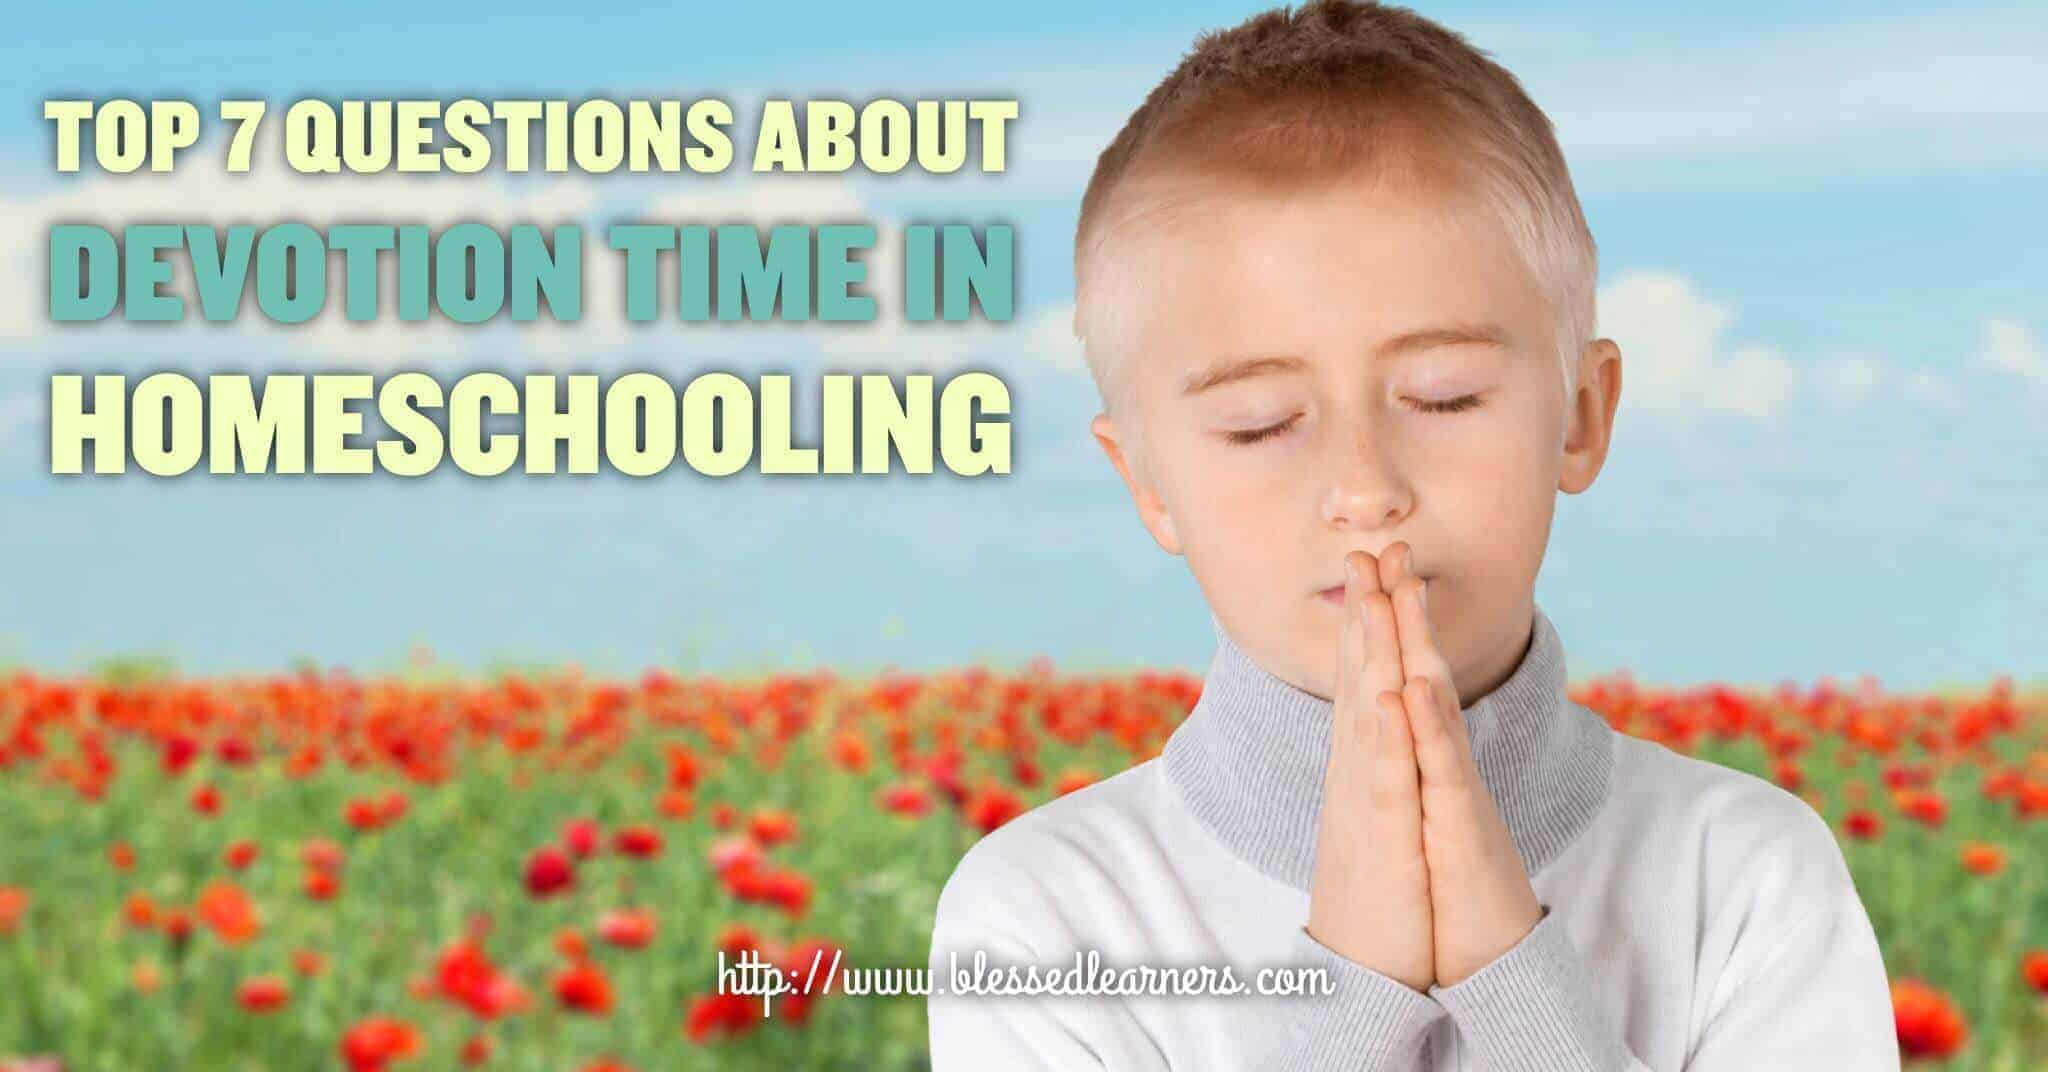 Top 7 Questions About Devotion Time in Homeschooling